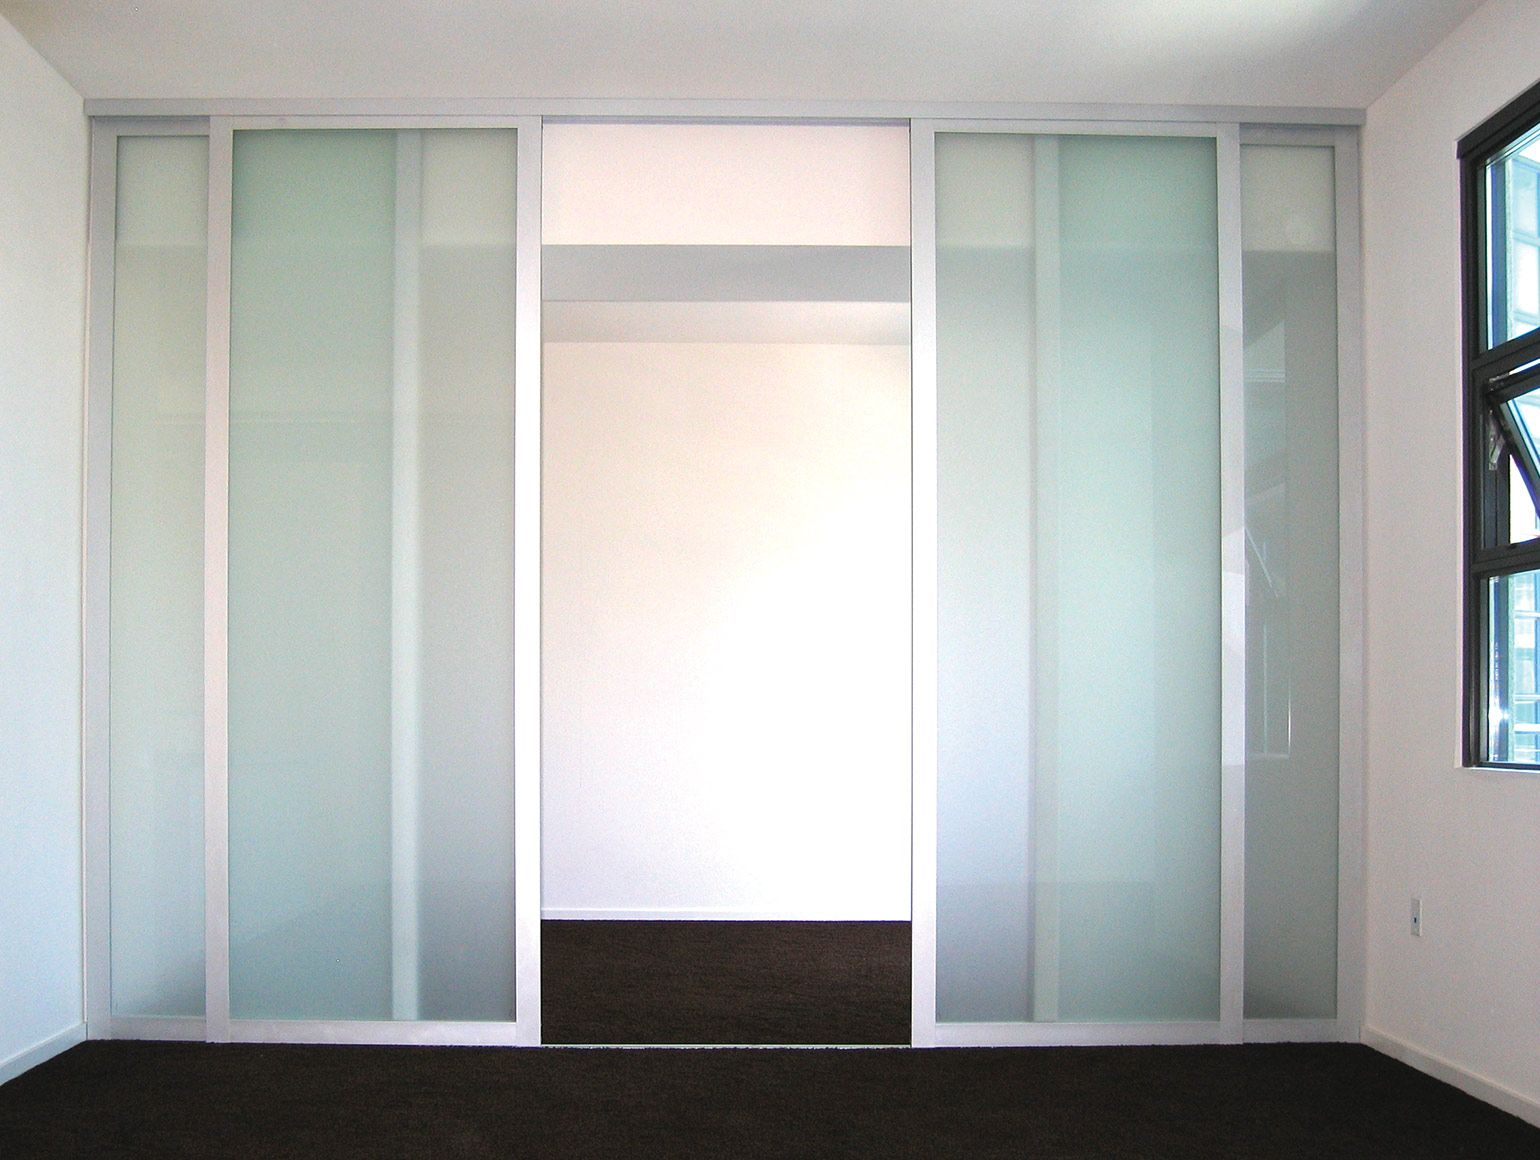 Double frosted glass room divider inspirational gallery double frosted glass room dividers easily divide one room into two rooms double sliding glass doors installed with silver frame finish planetlyrics Image collections